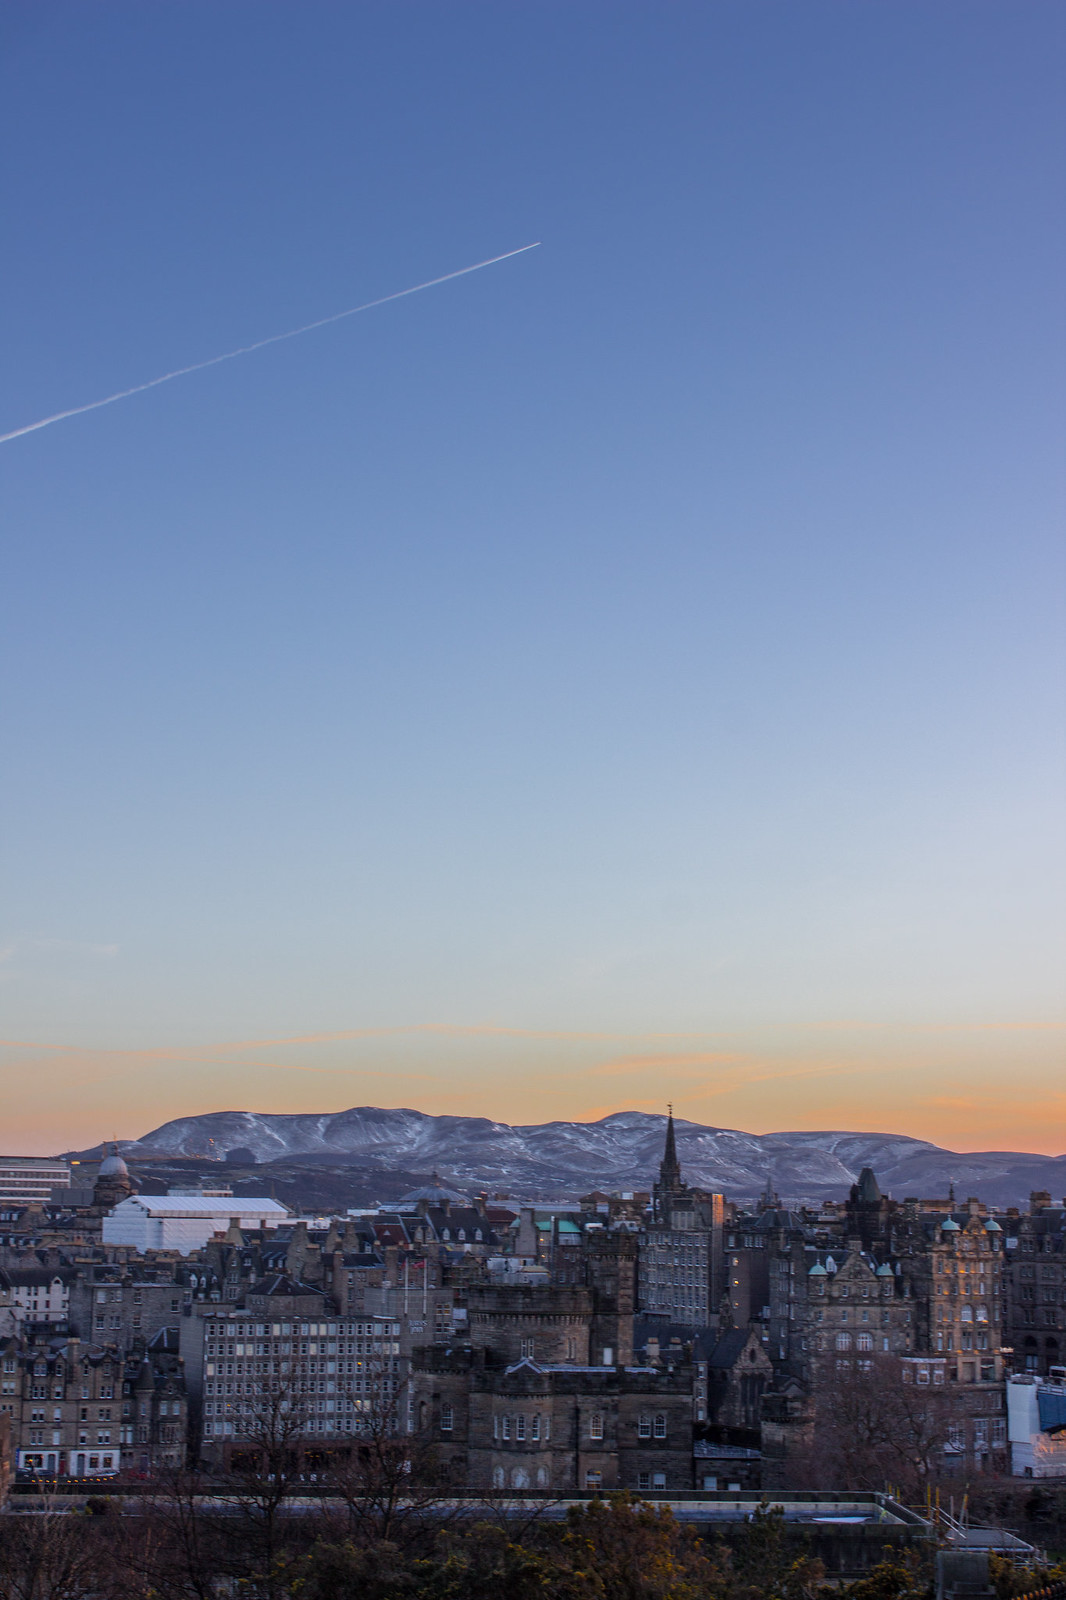 Sunset over Edinburgh and the Blackford Hills